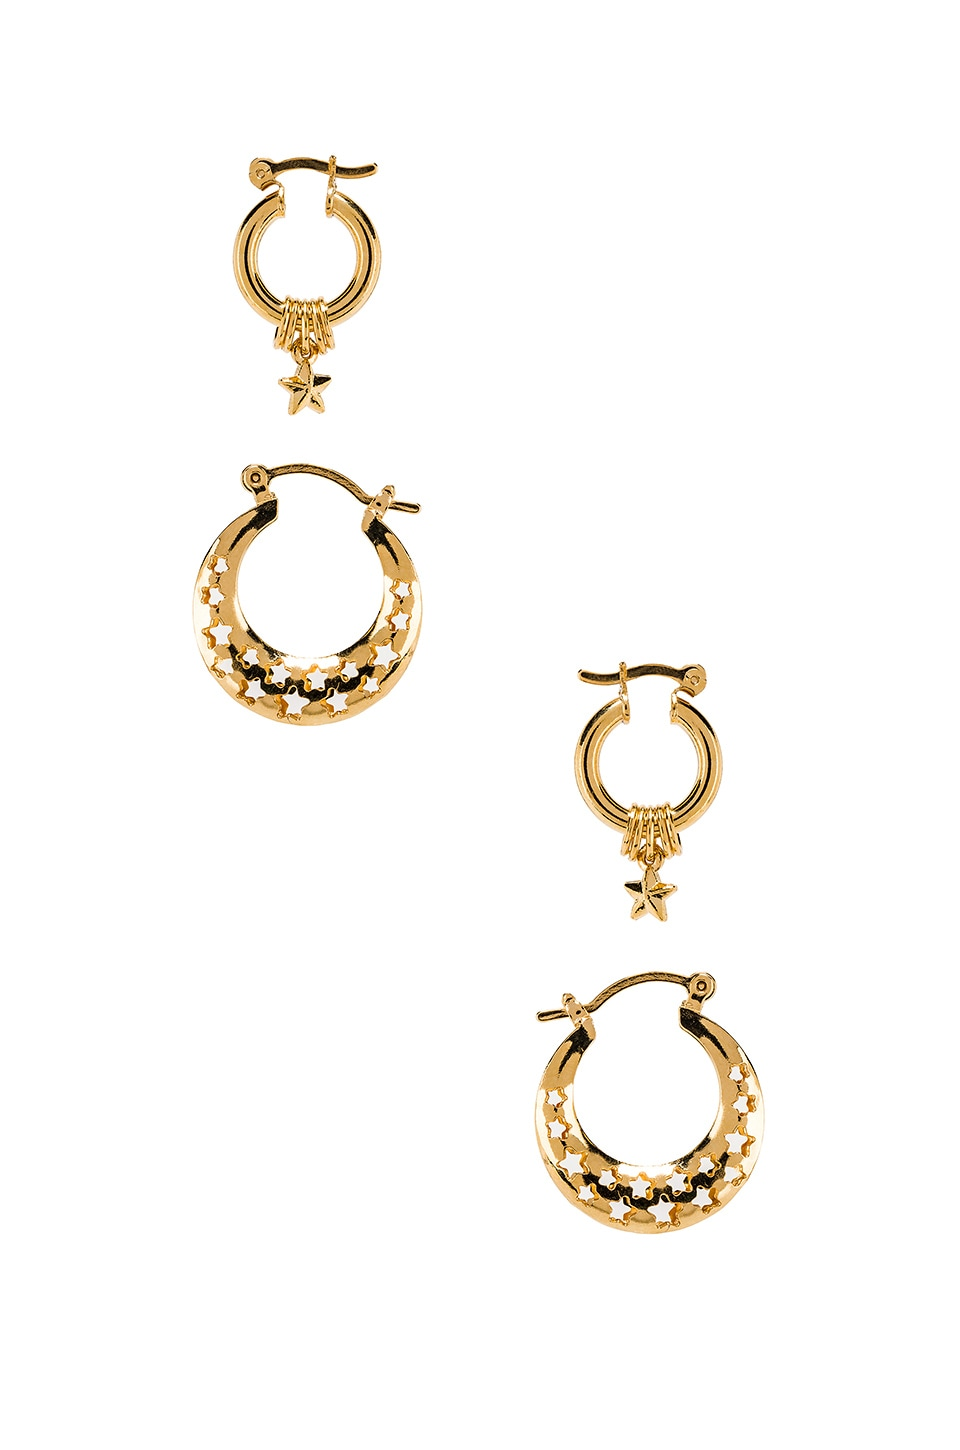 joolz by Martha Calvo Celestial Earring Set in Gold